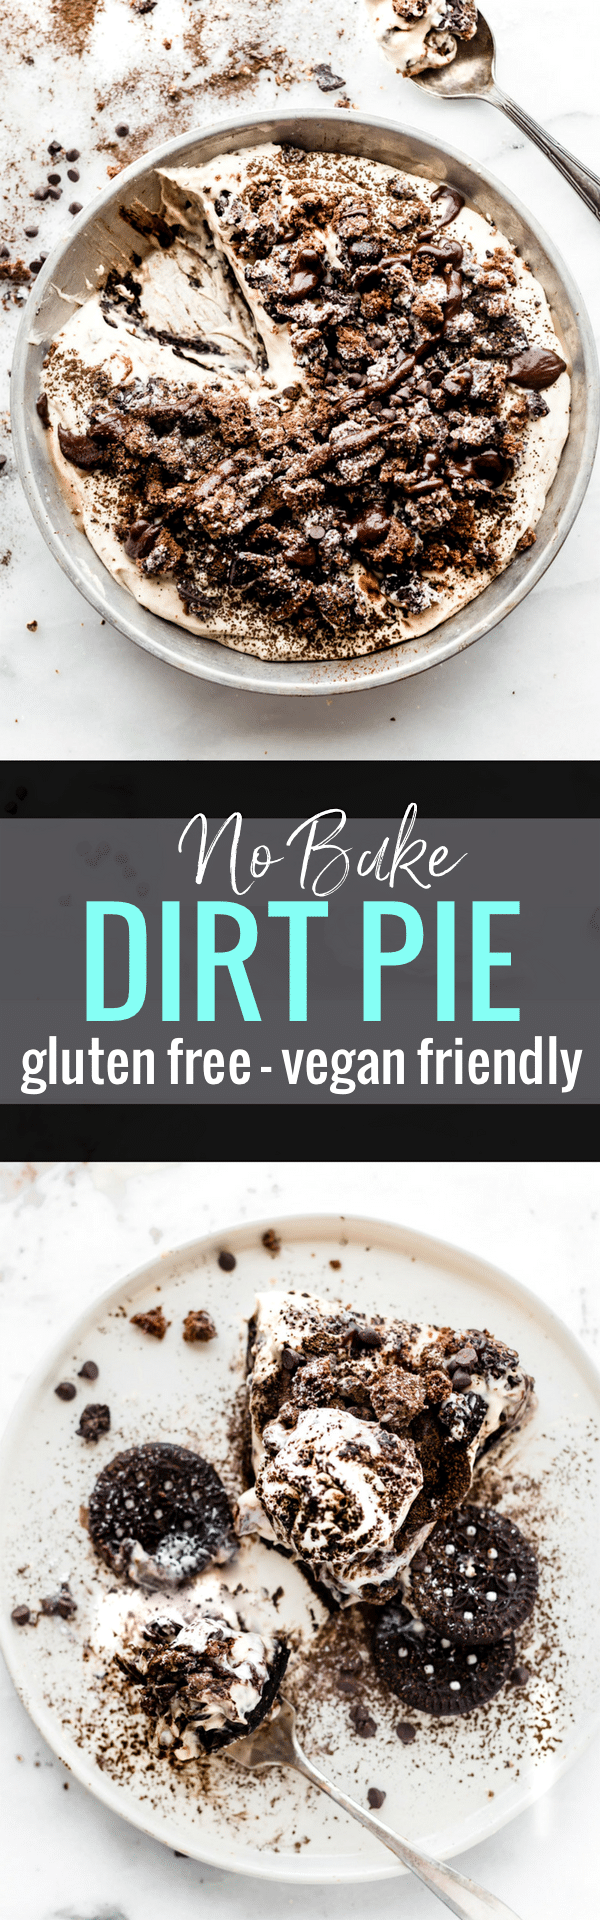 "A vegan friendly no bake dirt pie just got a healthier upgrade! This EASY no bake dessert made with GLUTEN FREE AND VEGAN FRIENDLY ""Oreo"" type cookies, coconut cream, dates, dark chocolate, and more. Plus it has the perfect 3 ingredient no bake dark chocolate crust to go with it. Easy and Tasty!  www.cottercrunch.com"